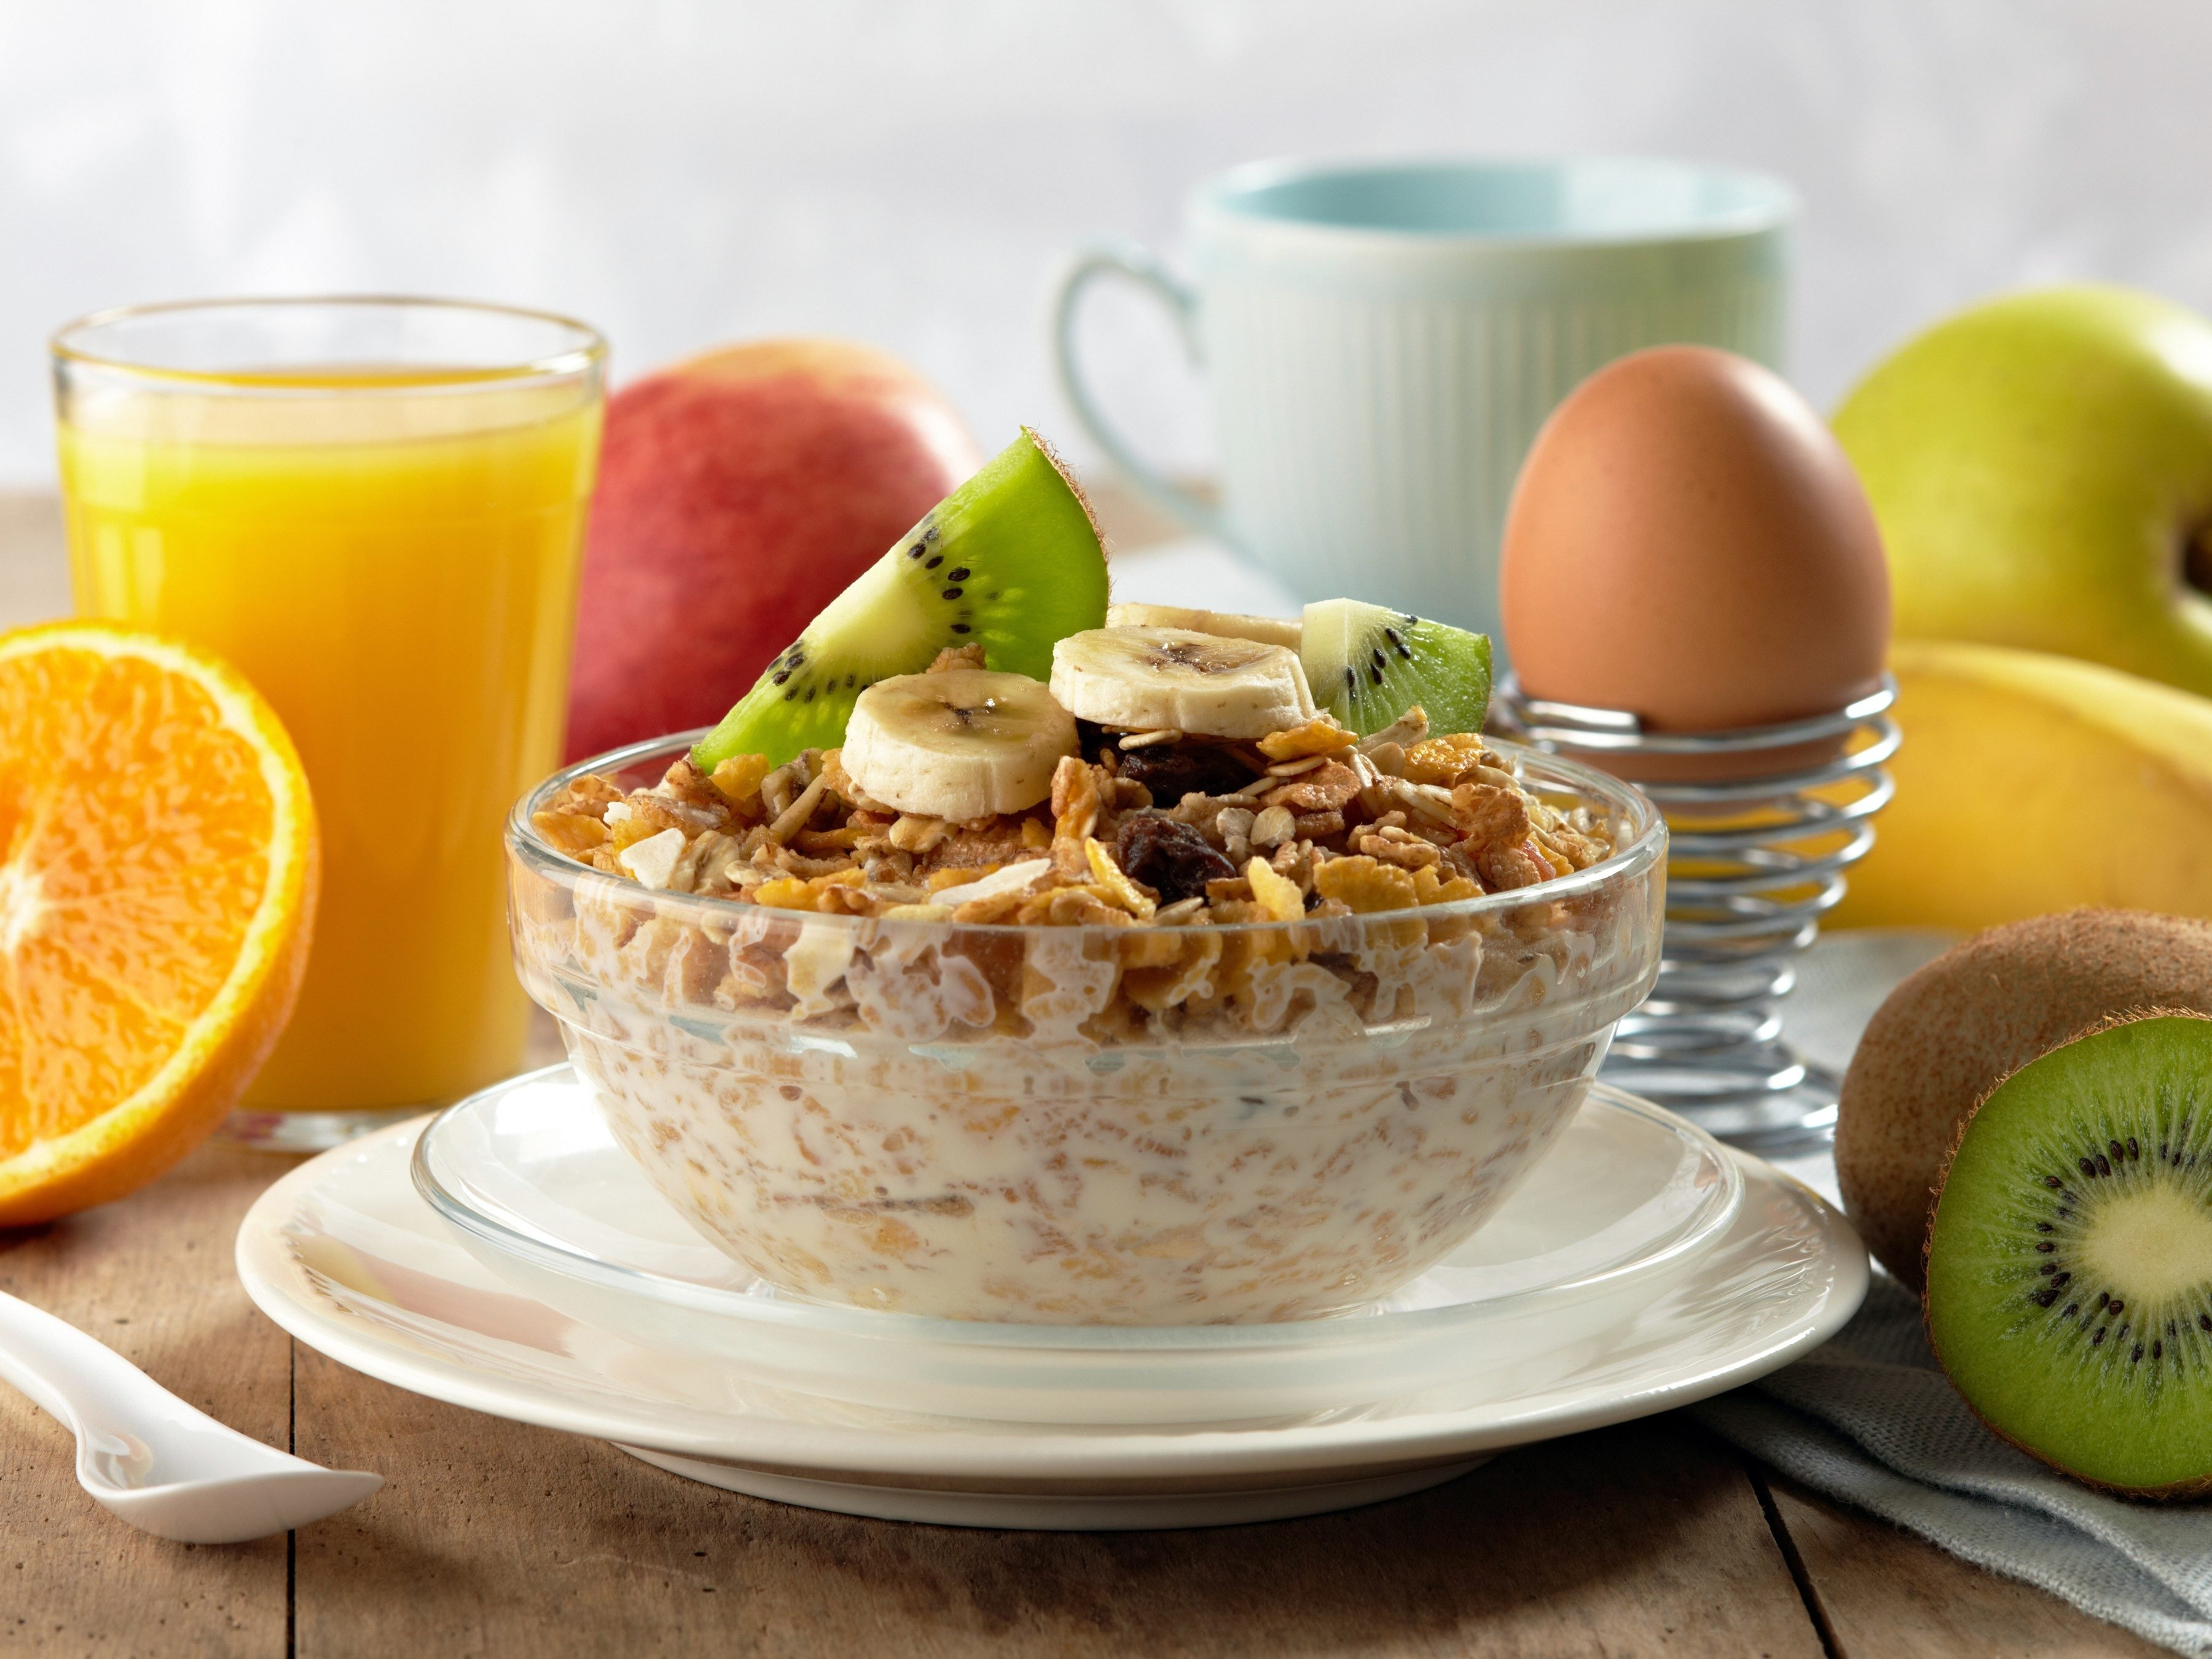 Foods That Can Help Prevent Gum Disease: Whole Grain Cereal with Milk and Orange Juice